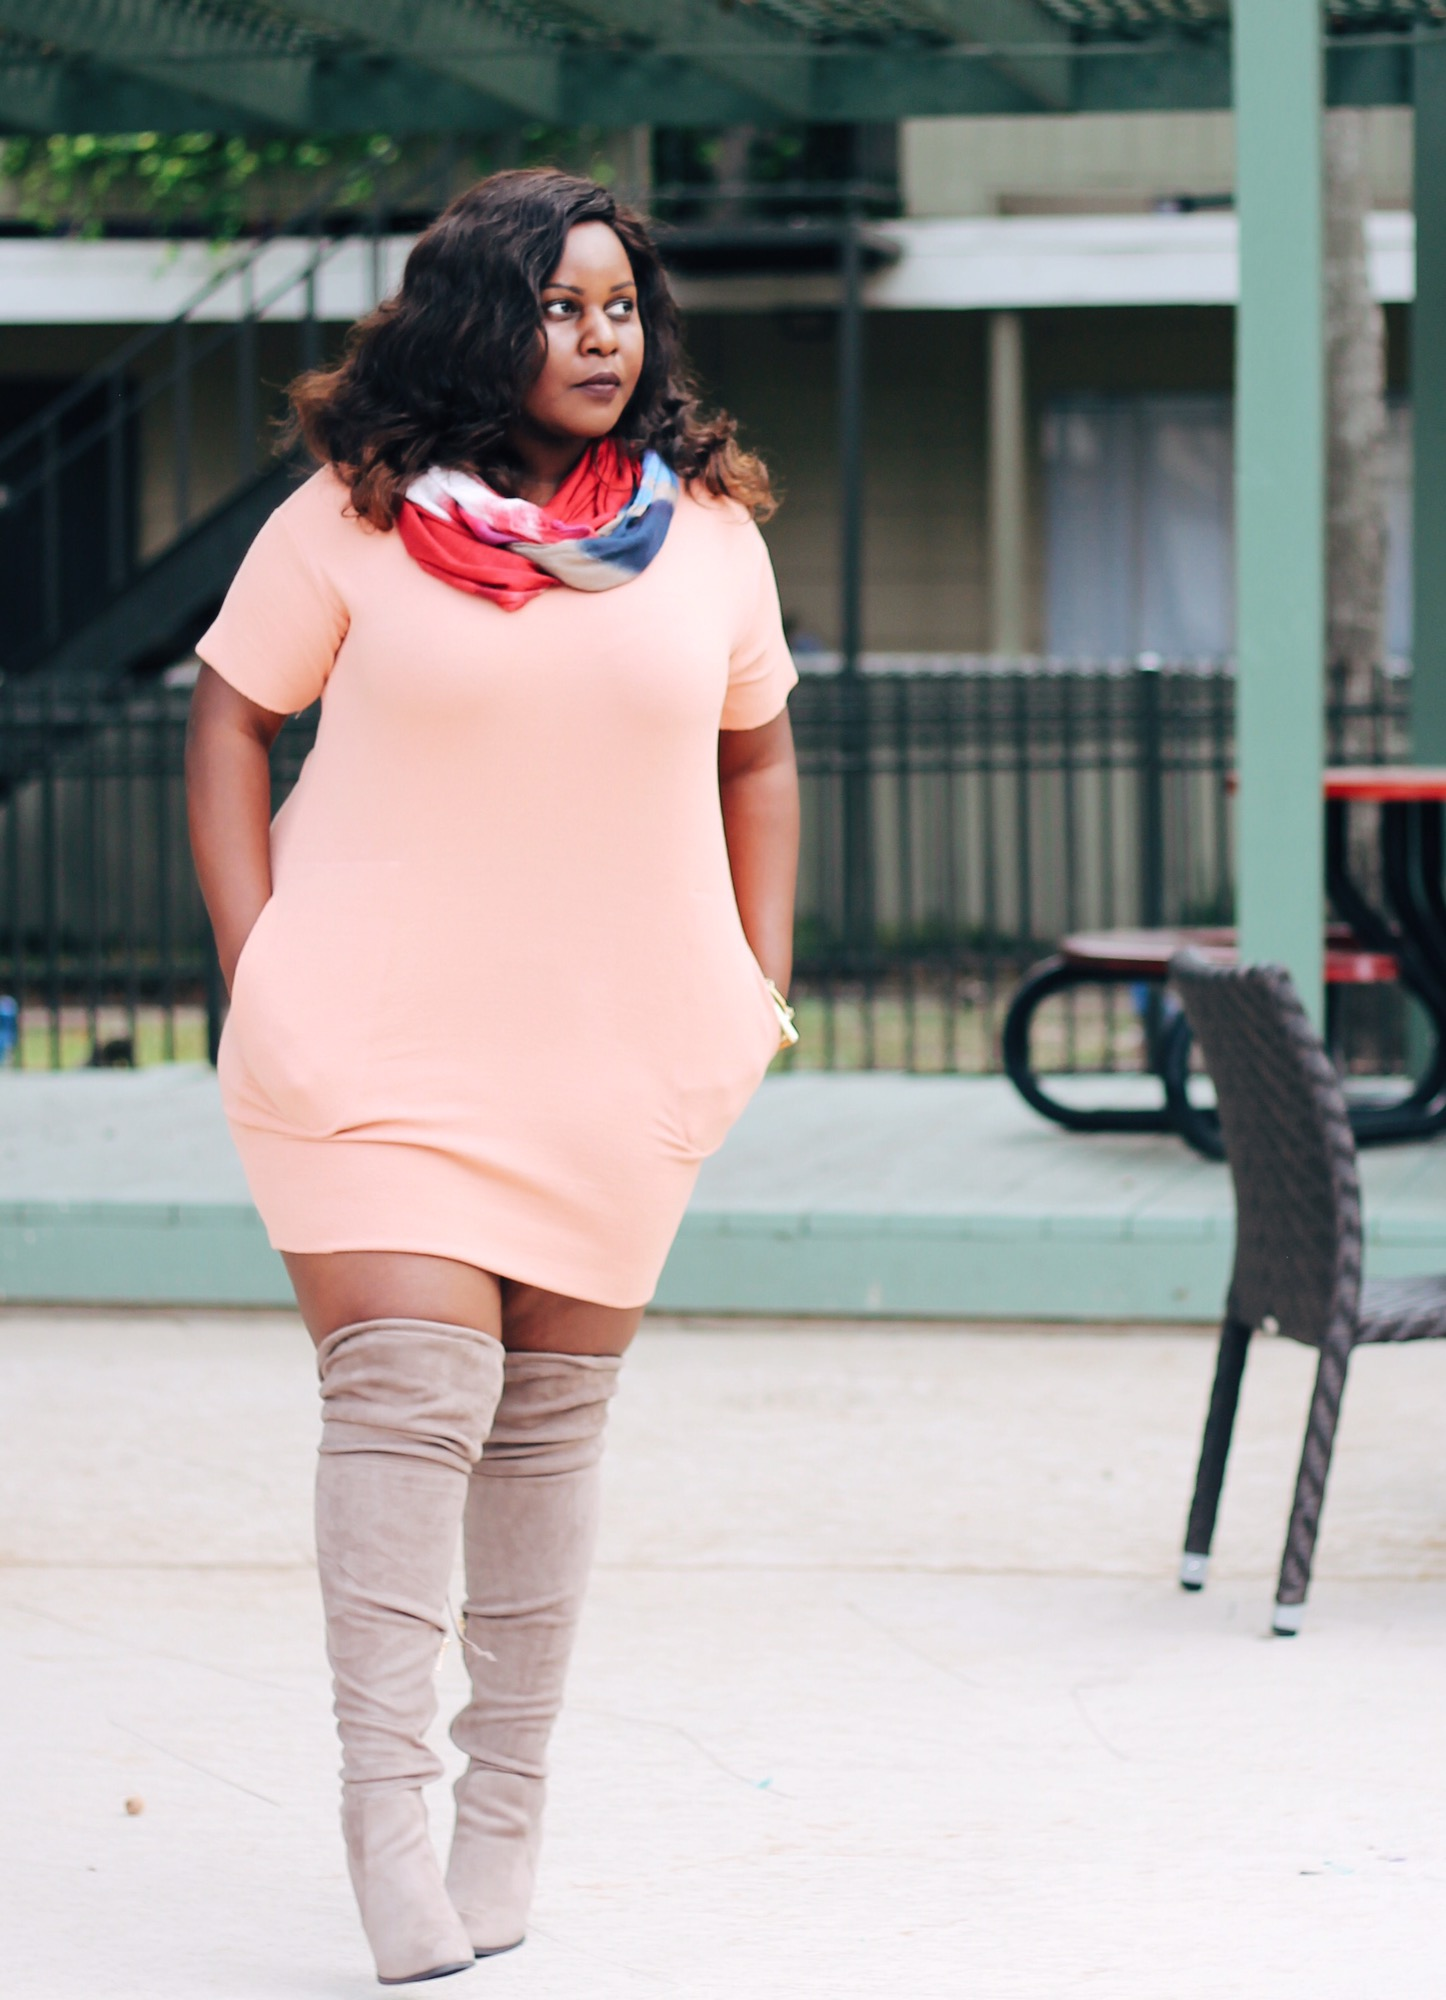 asos curve bloggers, beautiful curvy girls, curvy style dark skin fashion blogger curvy style blogger, dark skin beauty blogger, dark skin blogger, houston blogger, inspiration for 2016, inspiring bloggers and blogs, new years resolutions, plus size blogger, quotes for 2016, relationship advice blogs, rules to live by in the new year, texas blogger, travel blogger, ugandan blogger, ugandan fashionista, ugandan style blogger, african print ankara skirt styles, where to get african print clothes in America and uk, exposure african crafts in kampala uganda, kyaligonza kampala african material, Steve Madden Bowwtye Heel Sandal, catherine malandrino boots, zara, tjmaxx